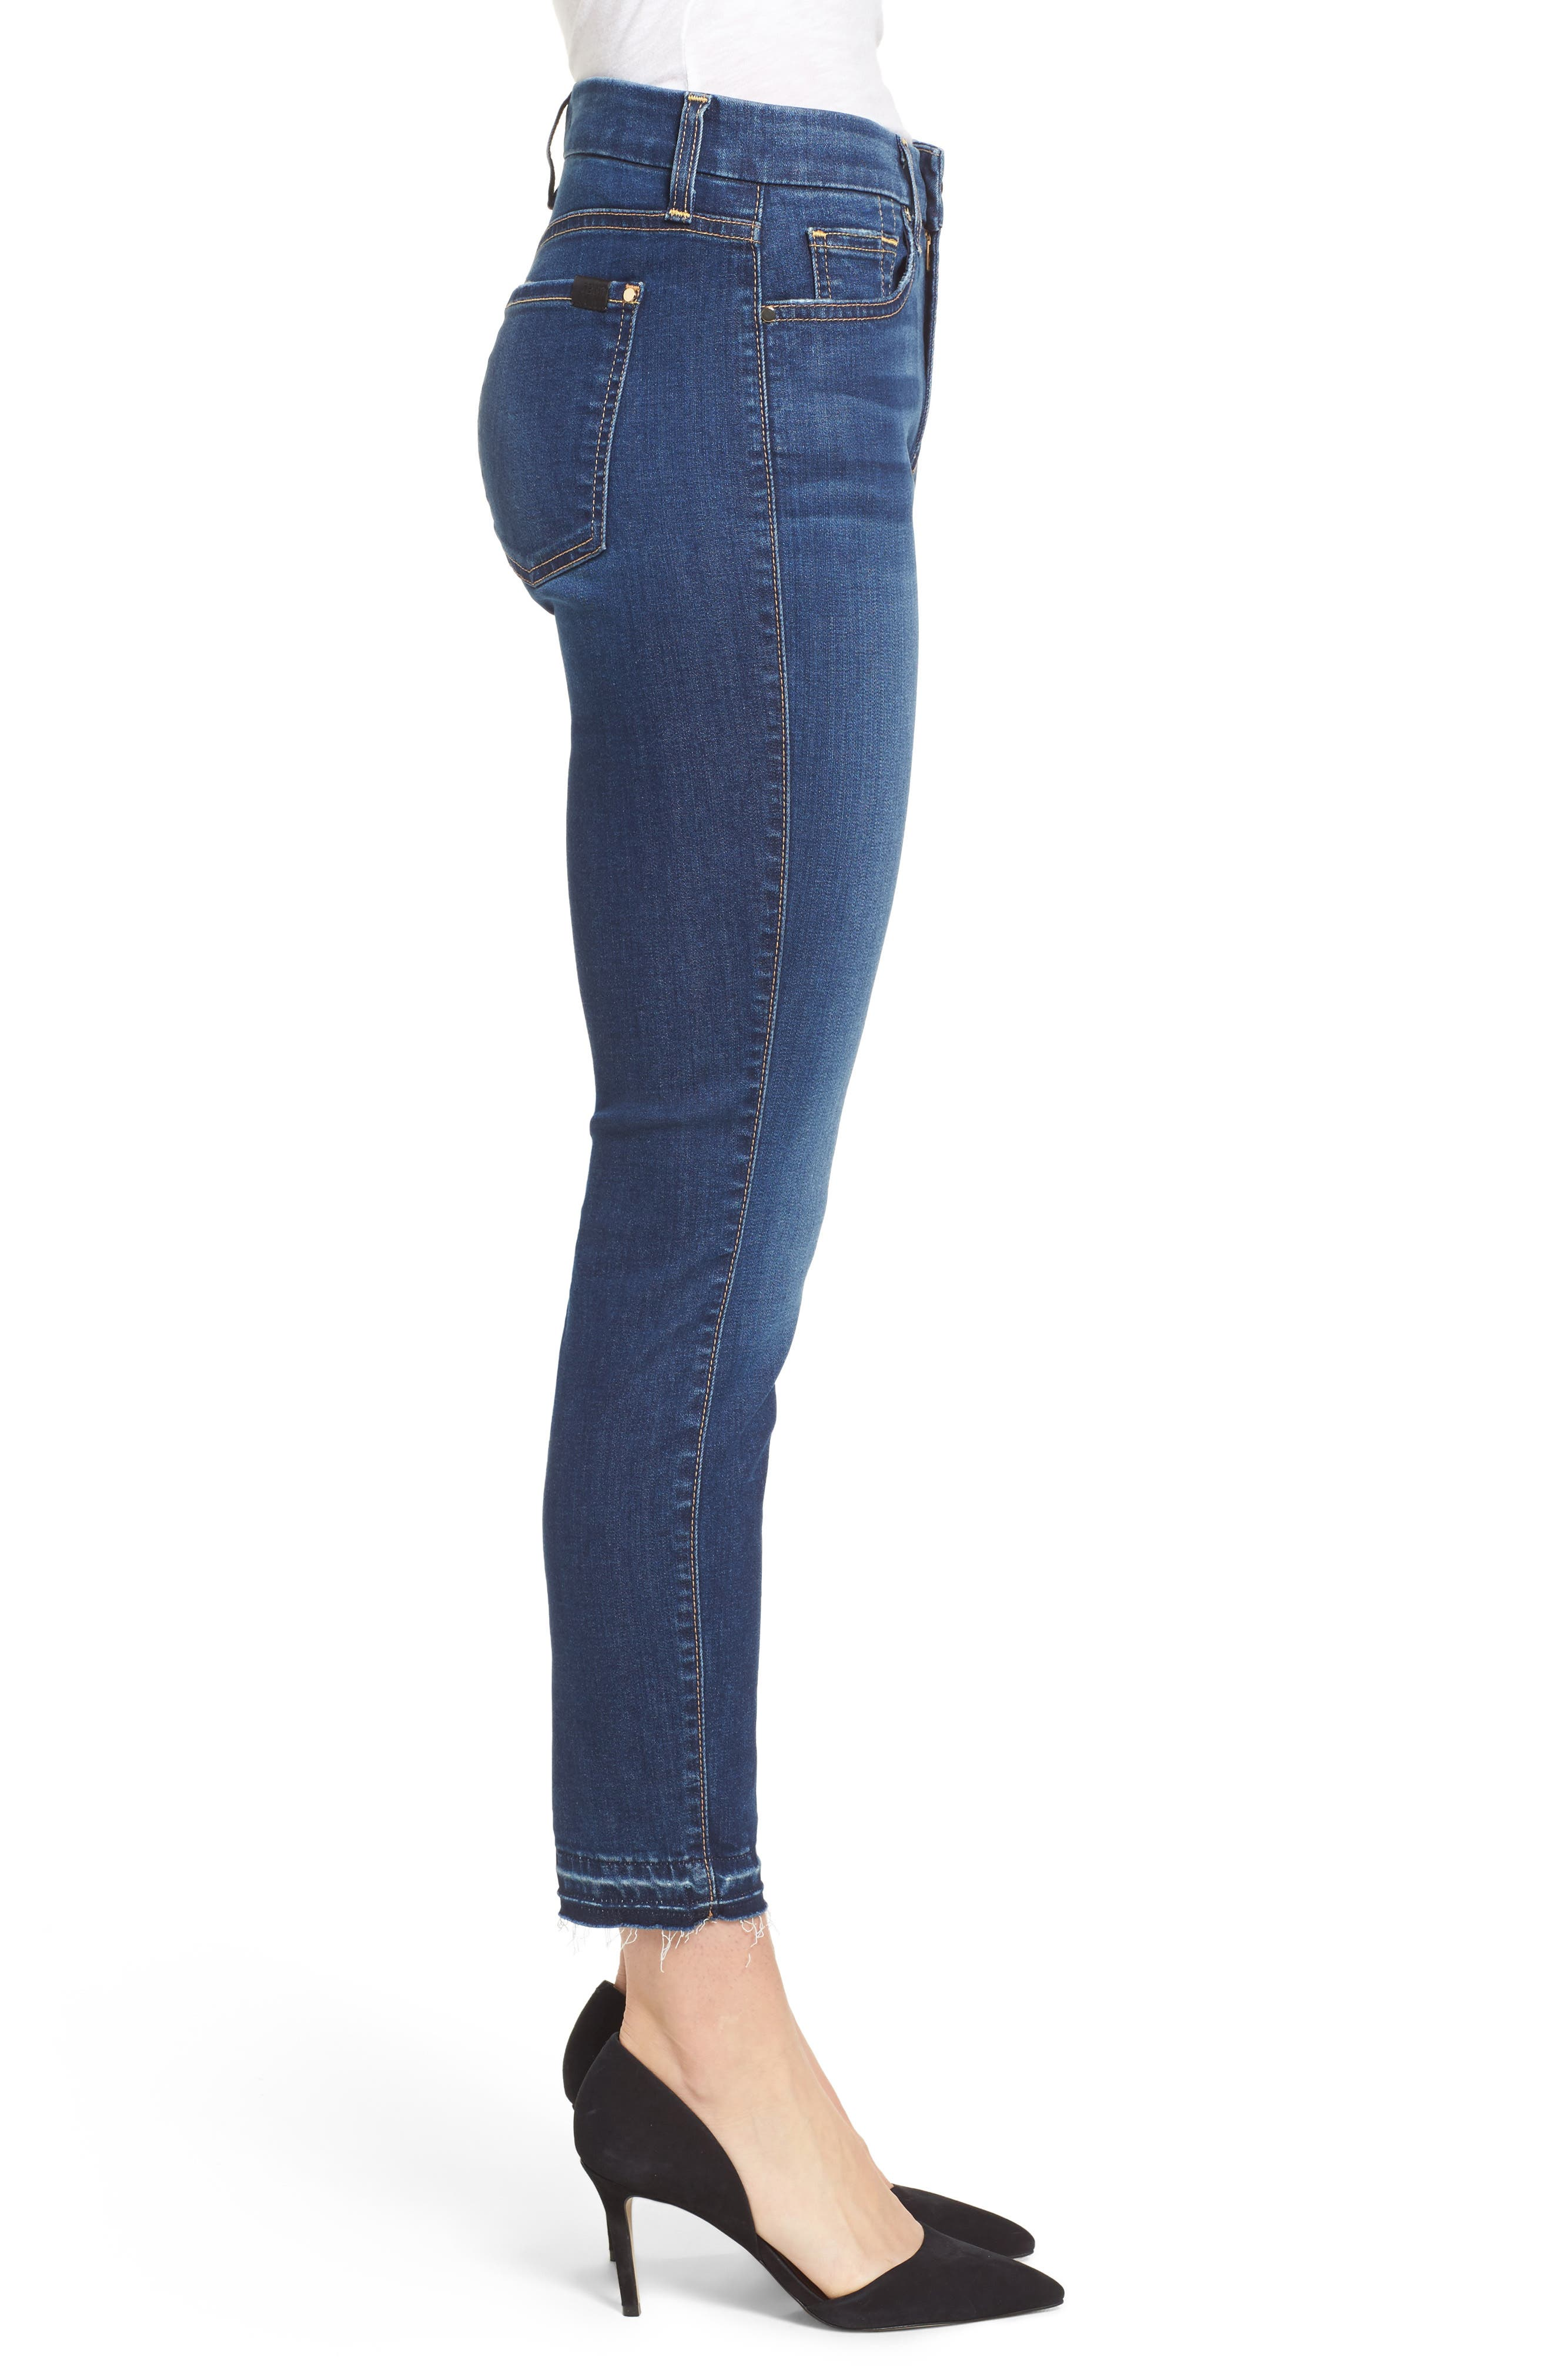 Release Hem Skinny Ankle Jeans,                             Alternate thumbnail 3, color,                             Riche Touch Medium Blue